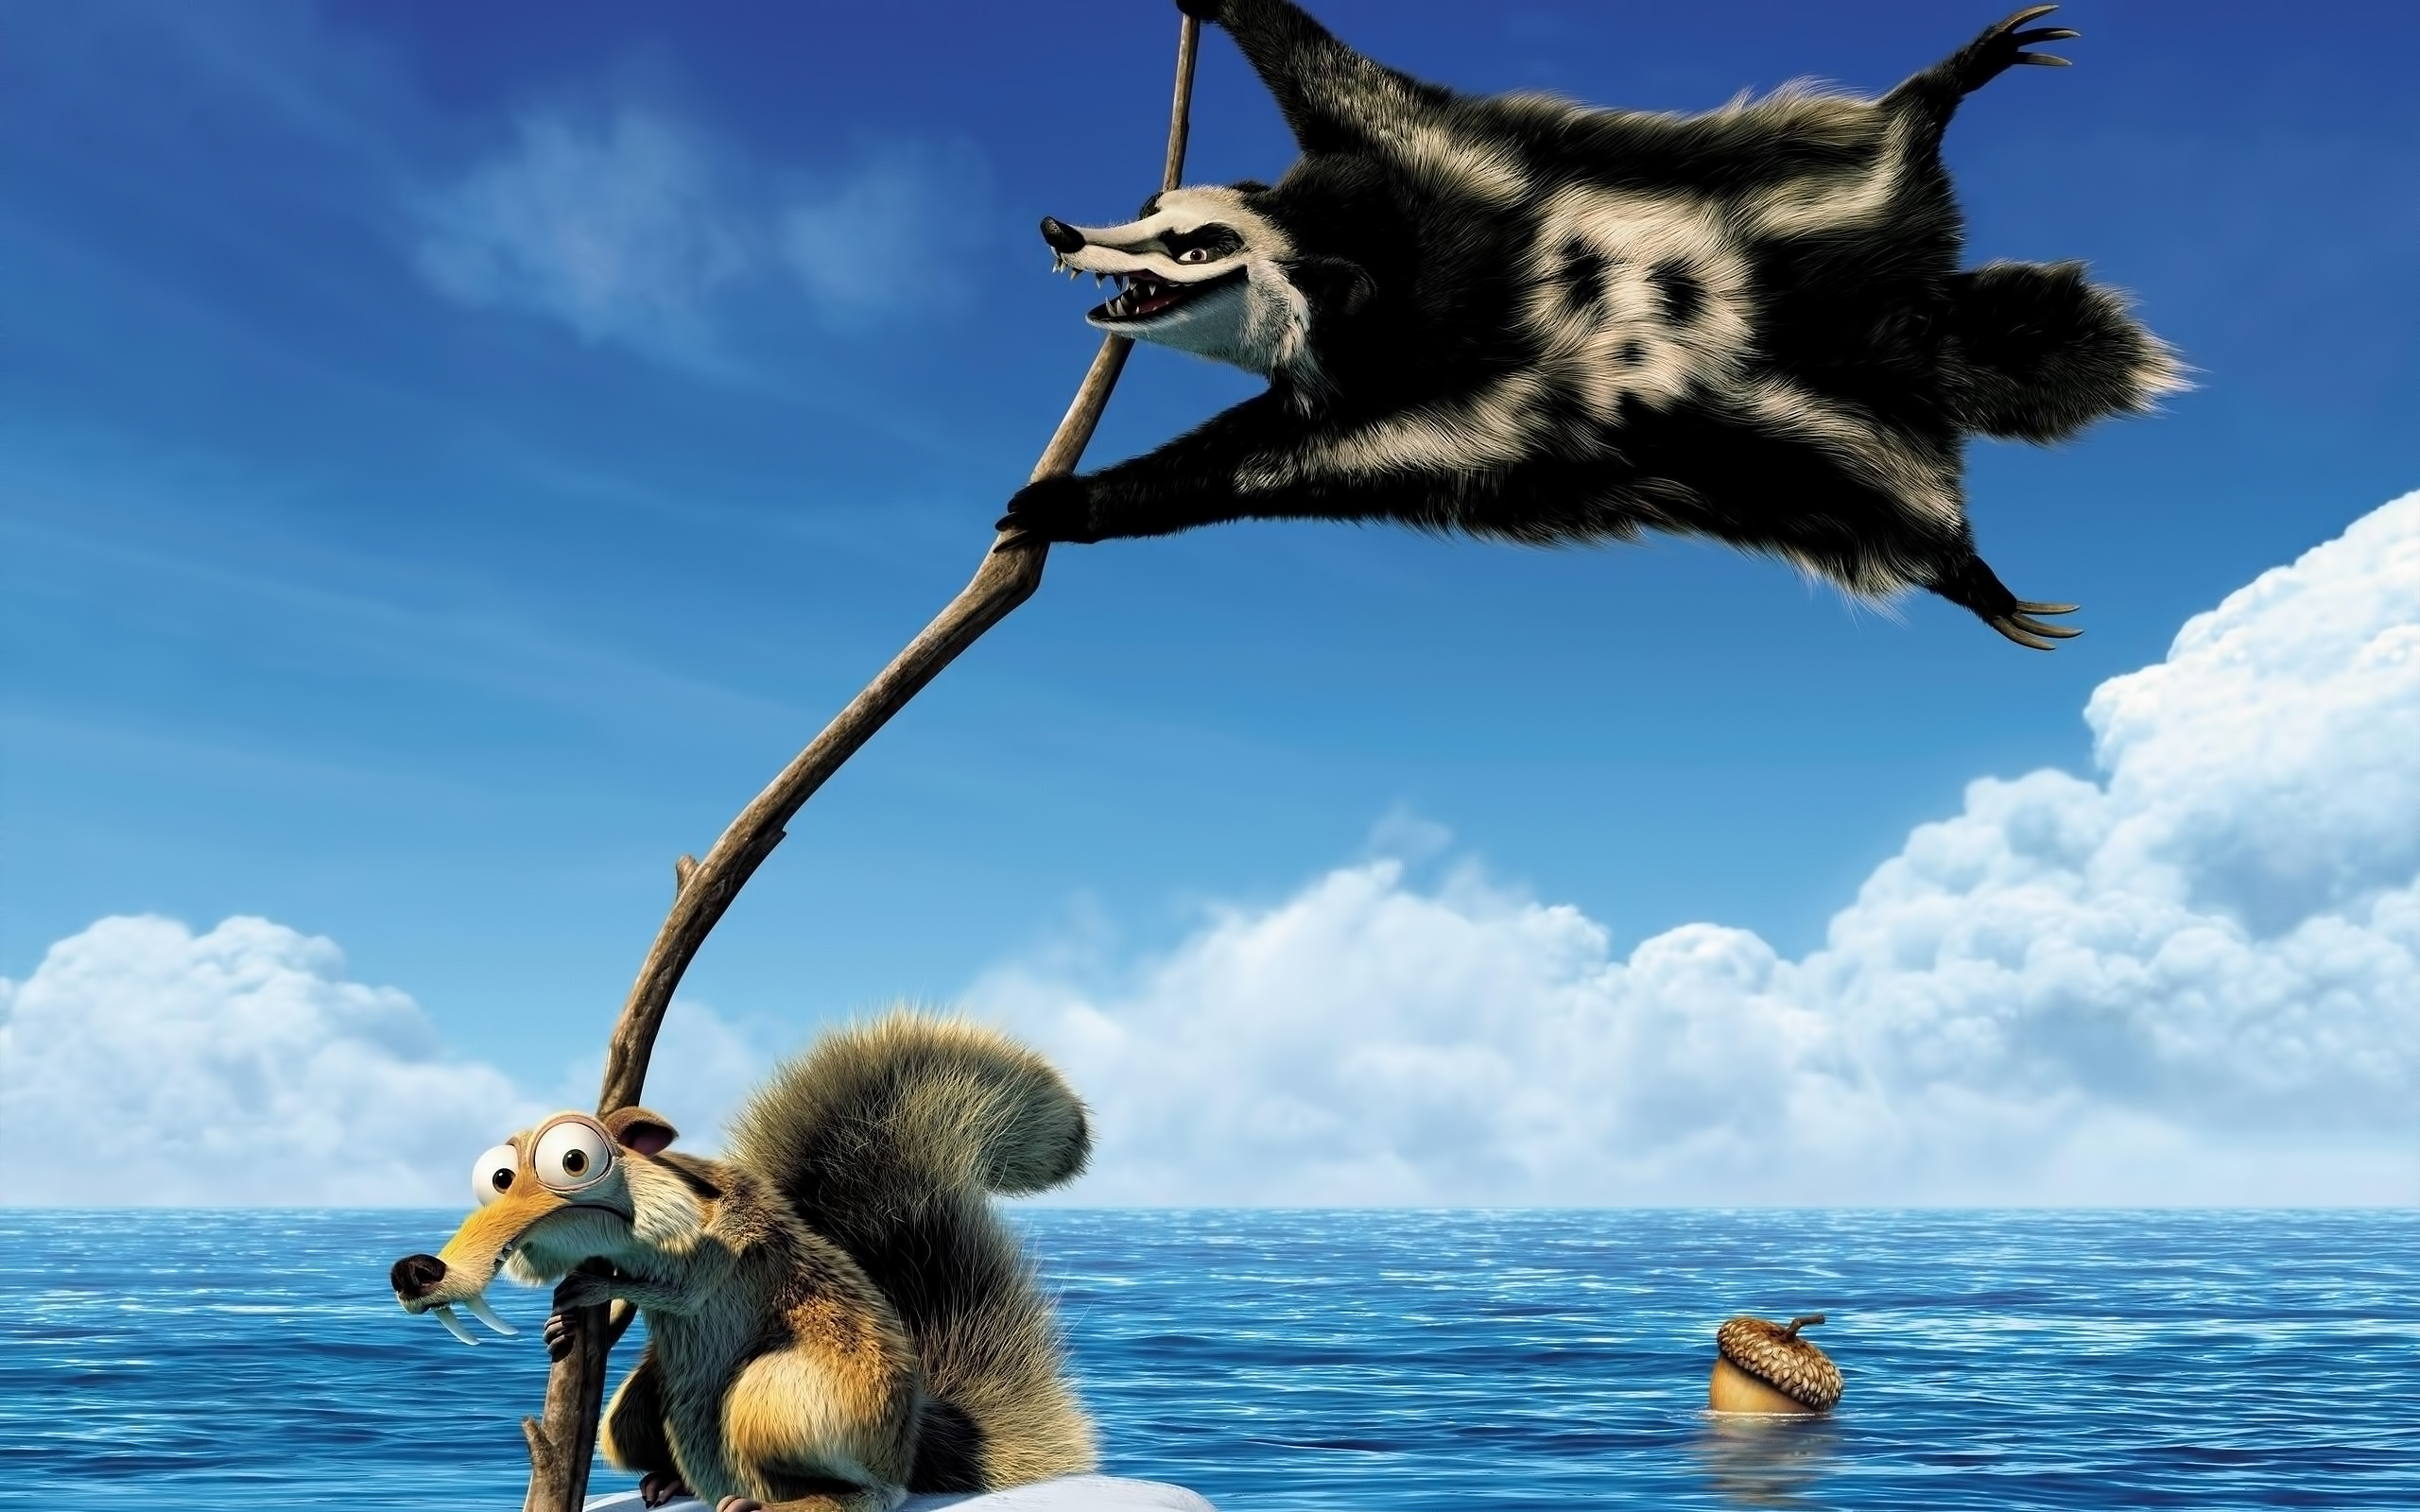 Best Ice Age wallpapers for phone screen